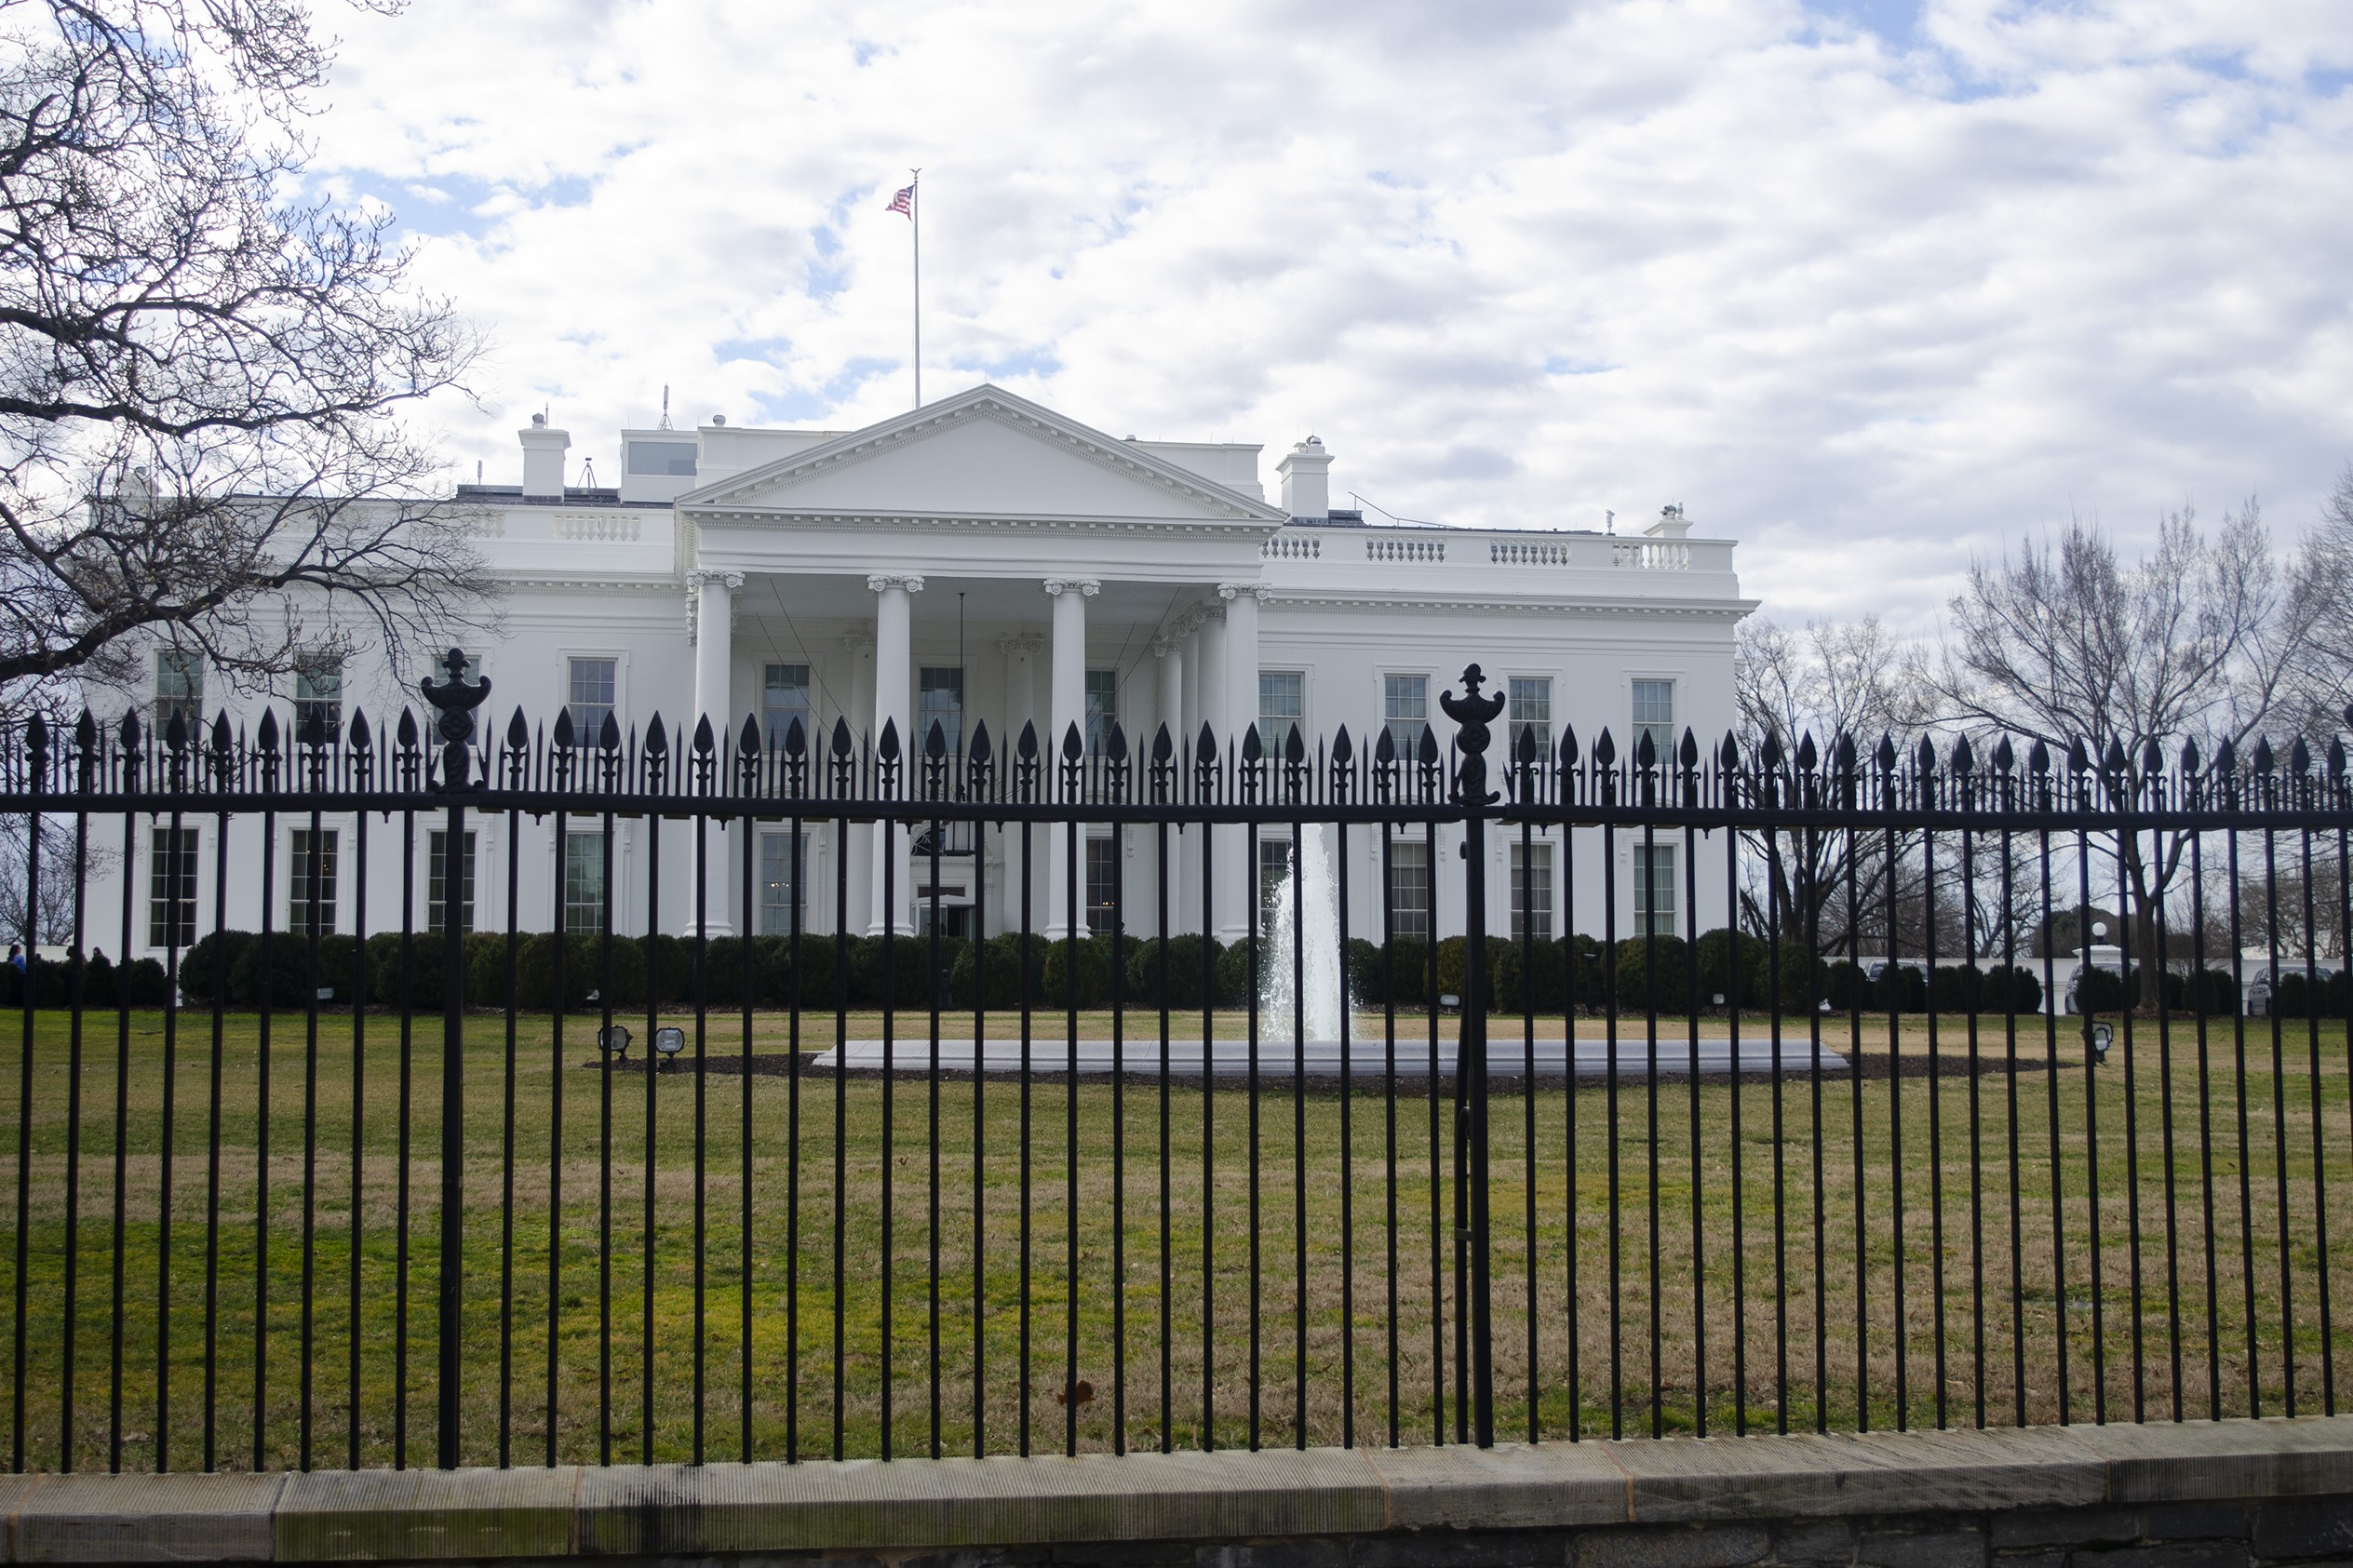 An NPR photo of the White House.